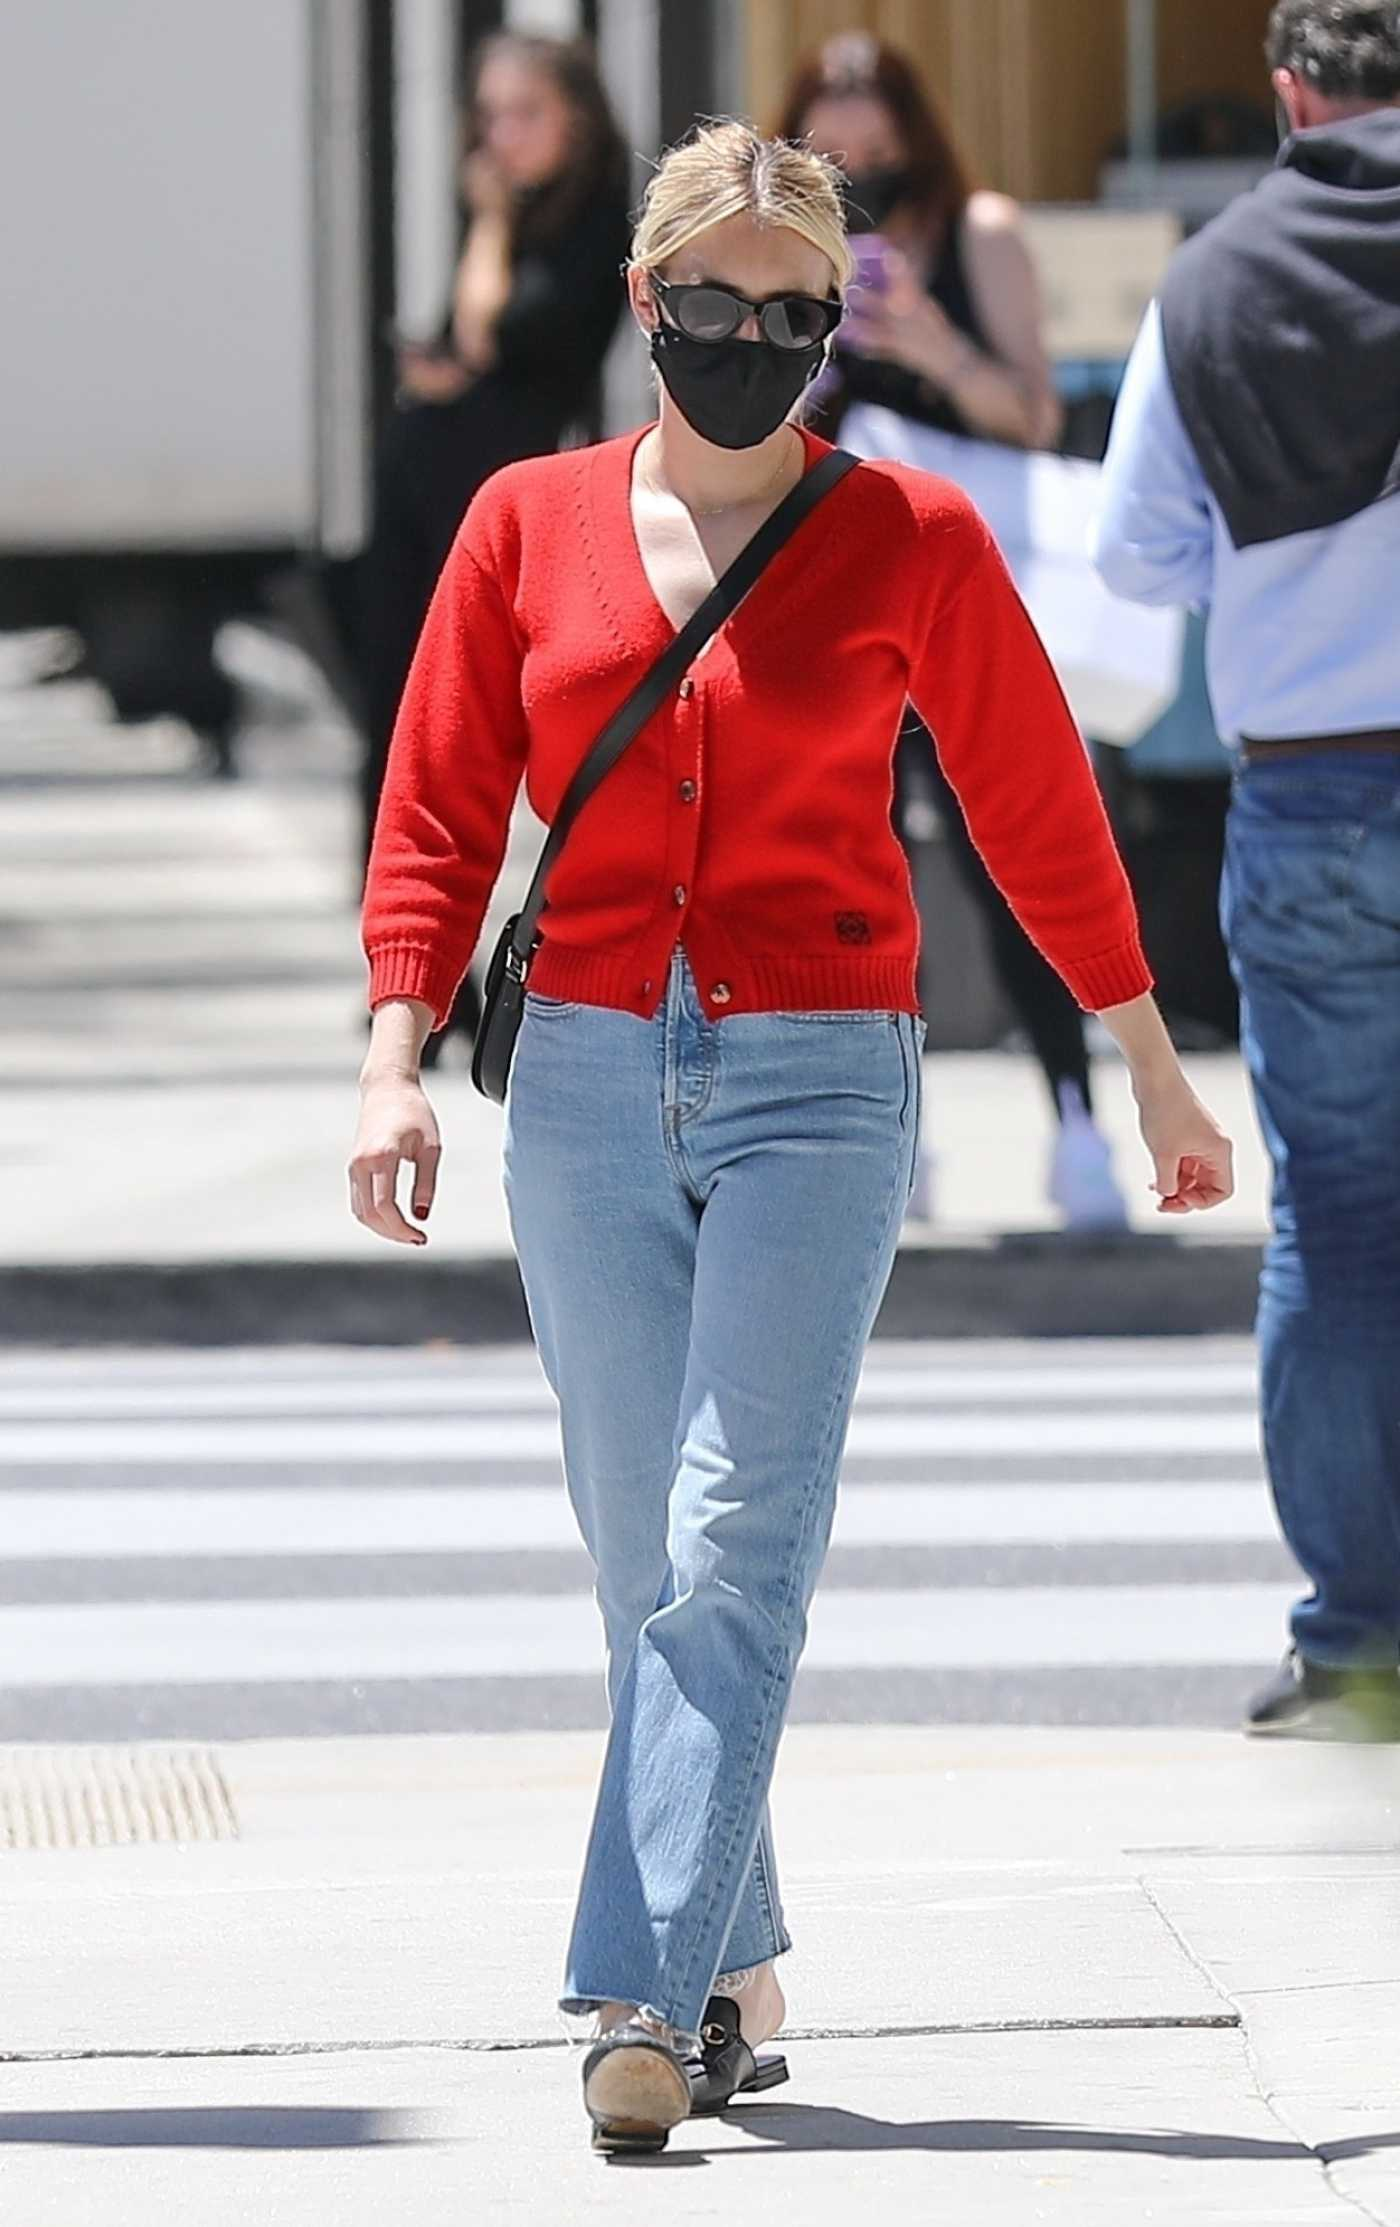 Emma Roberts in a Red Cardigan Heads to Rodeo Dr. in Beverly Hills 04/29/2021